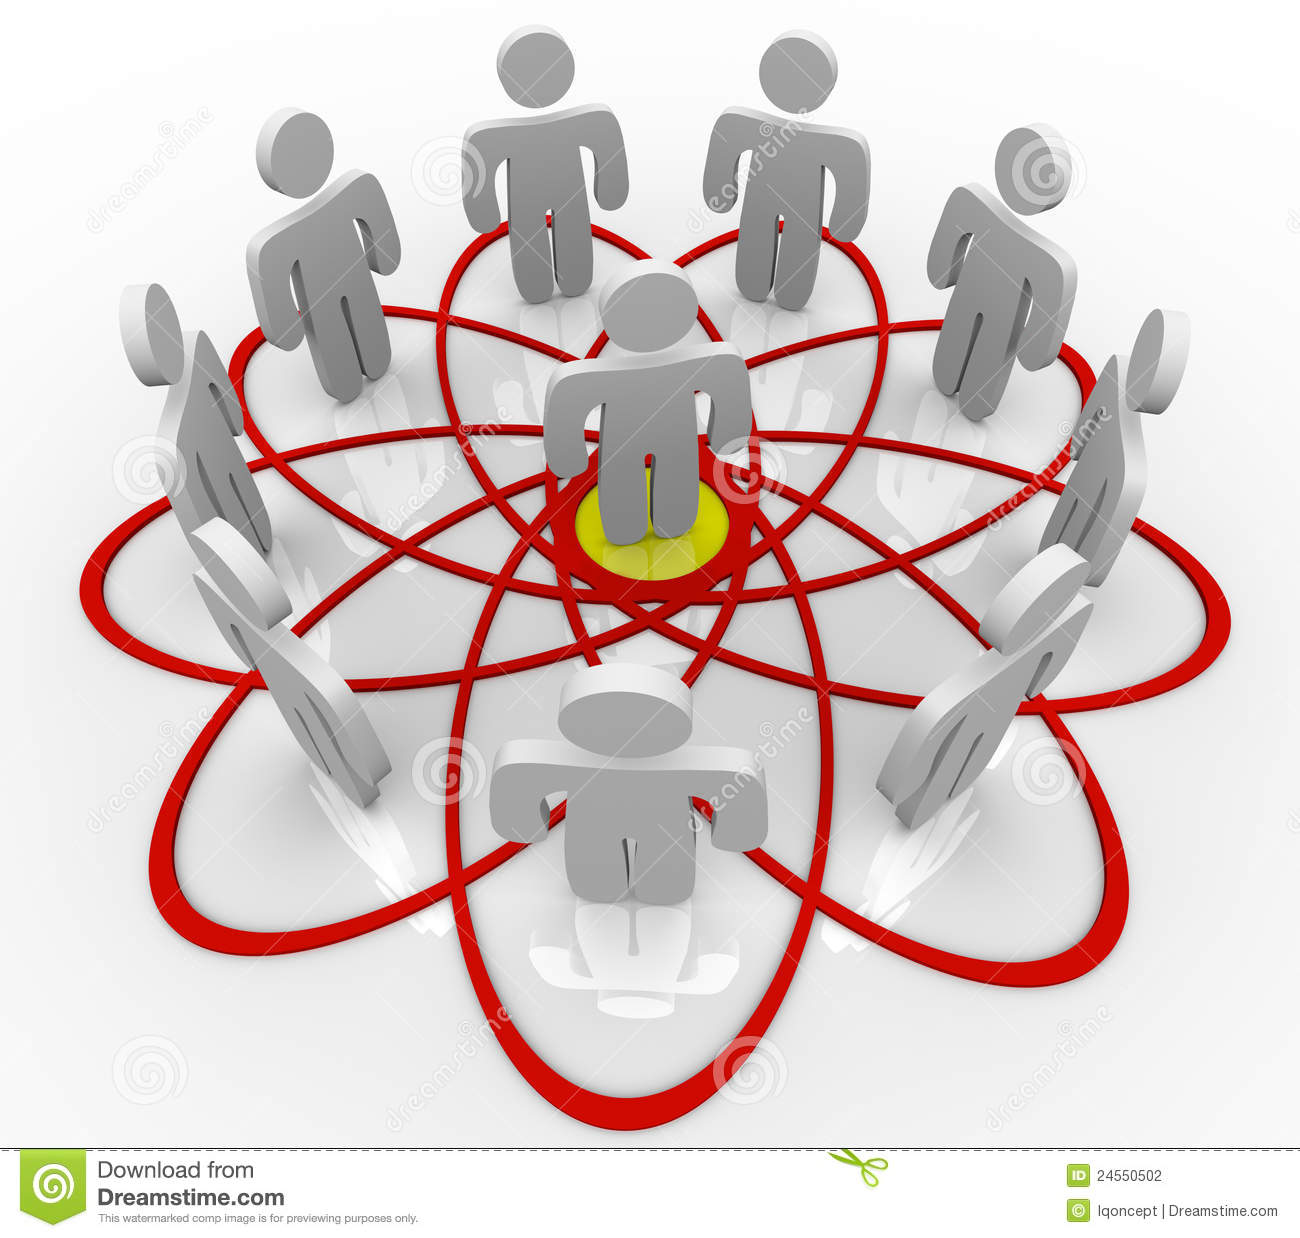 venn diagram many people one person in center